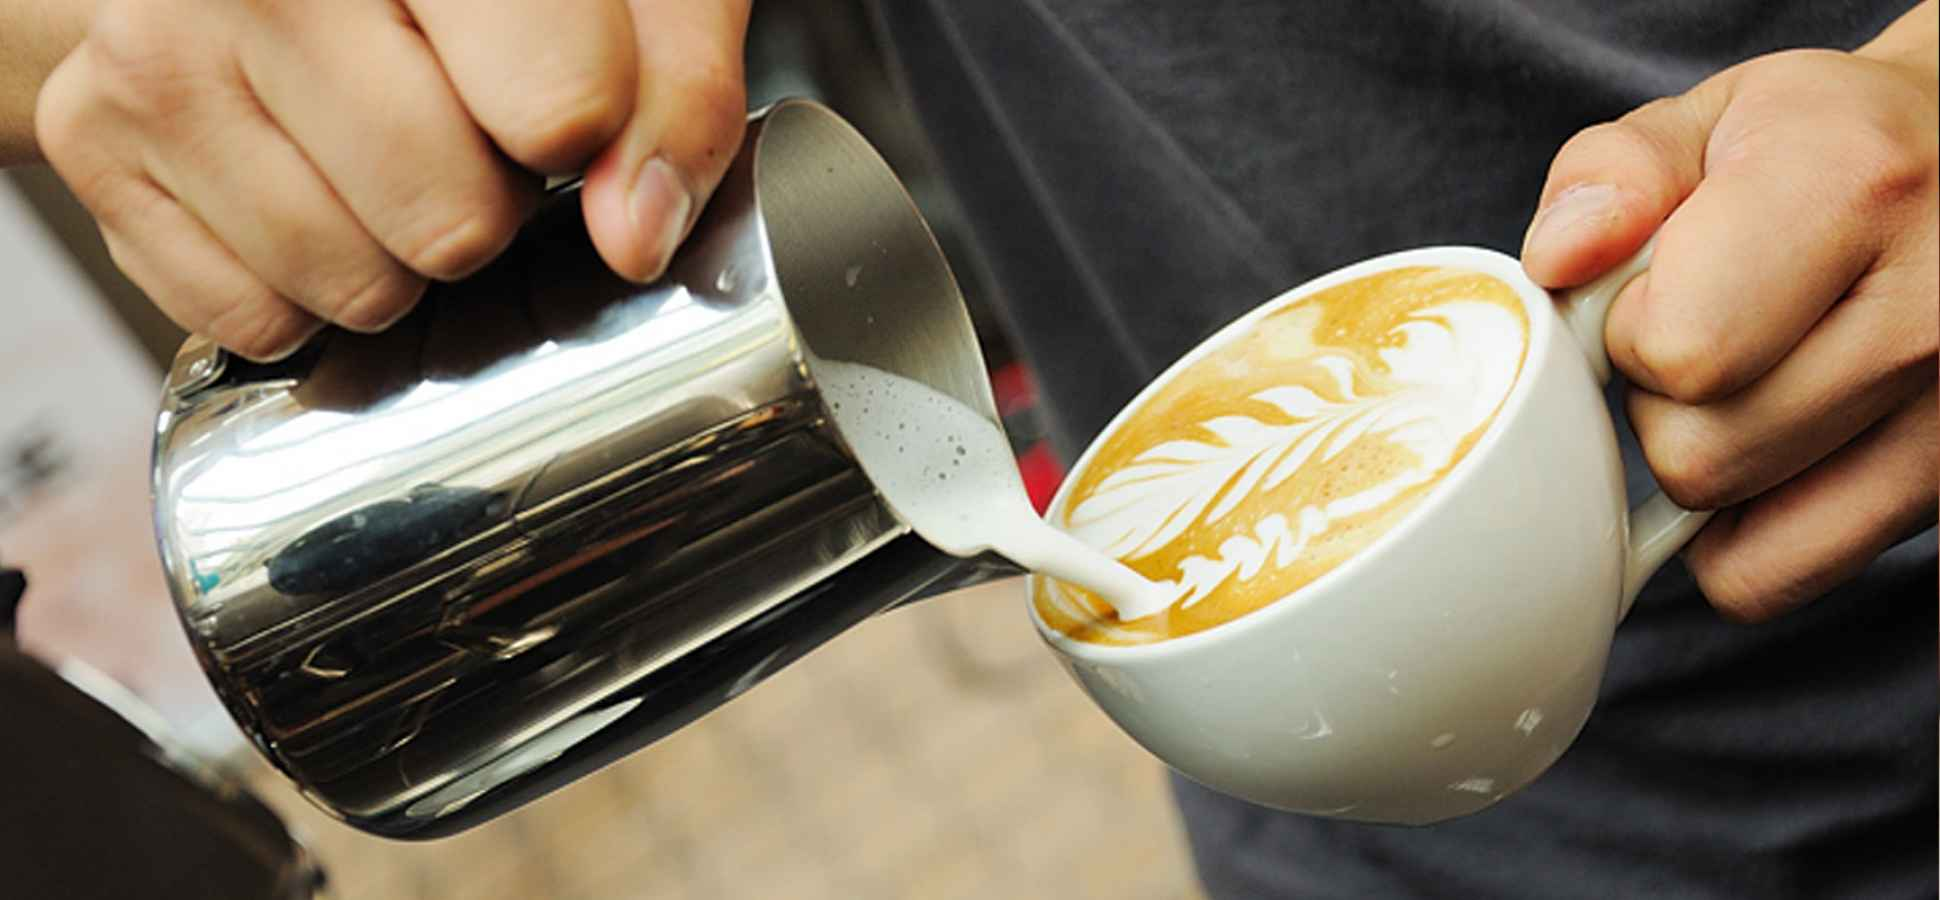 7 Reasons You Should Consider Quitting Coffee Today